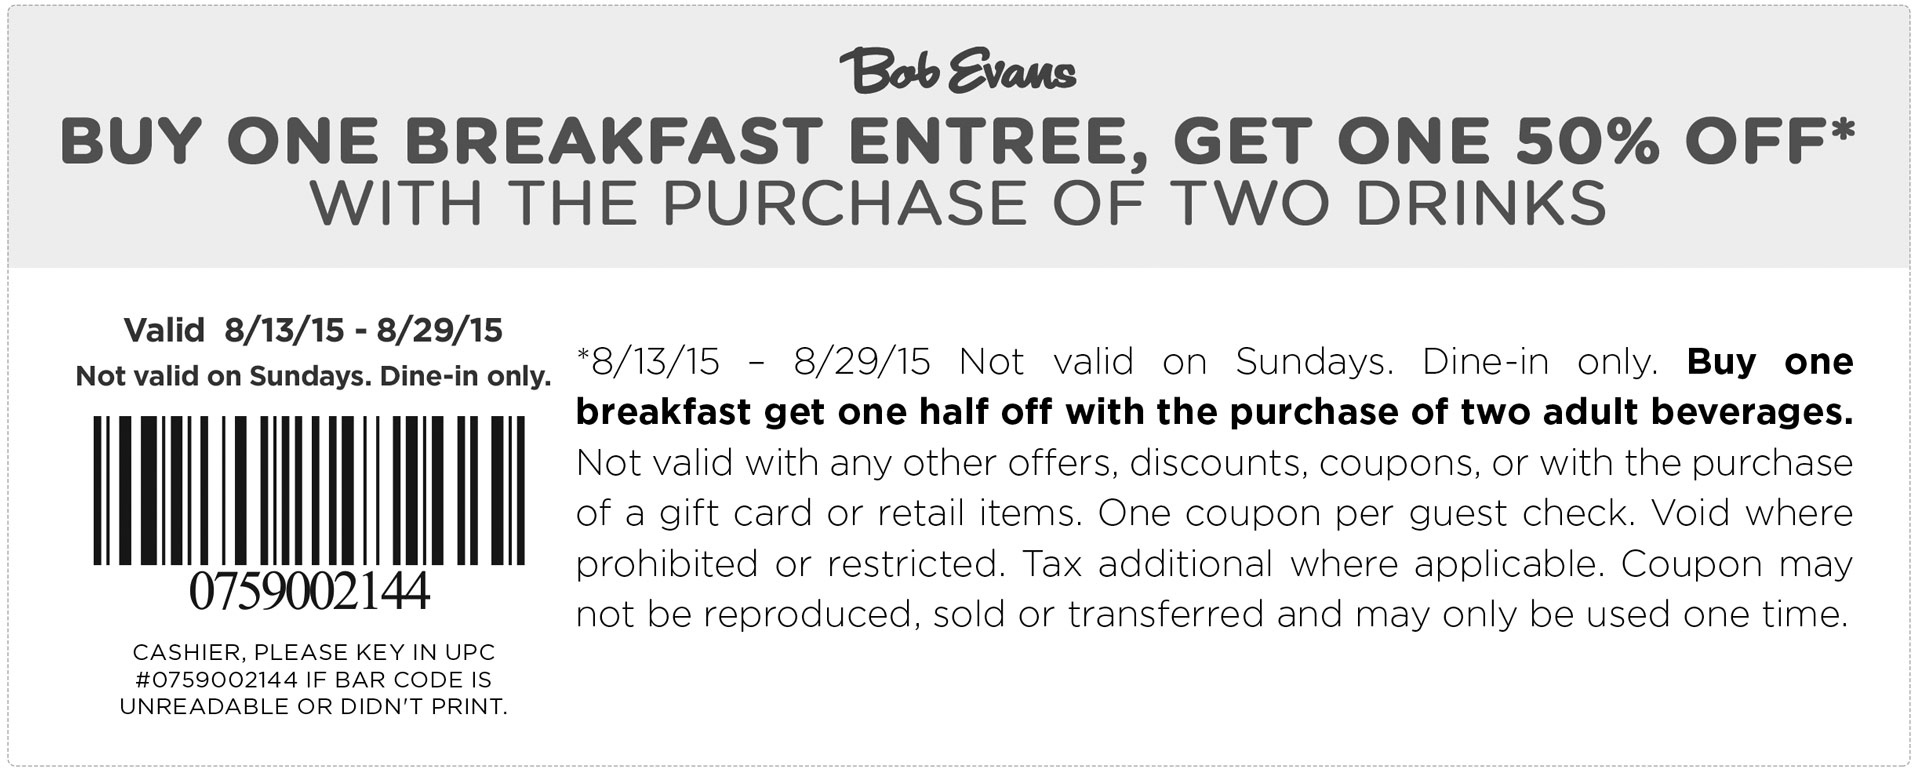 Bob Evans Coupon September 2017 Second breakfast 50% off at Bob Evans